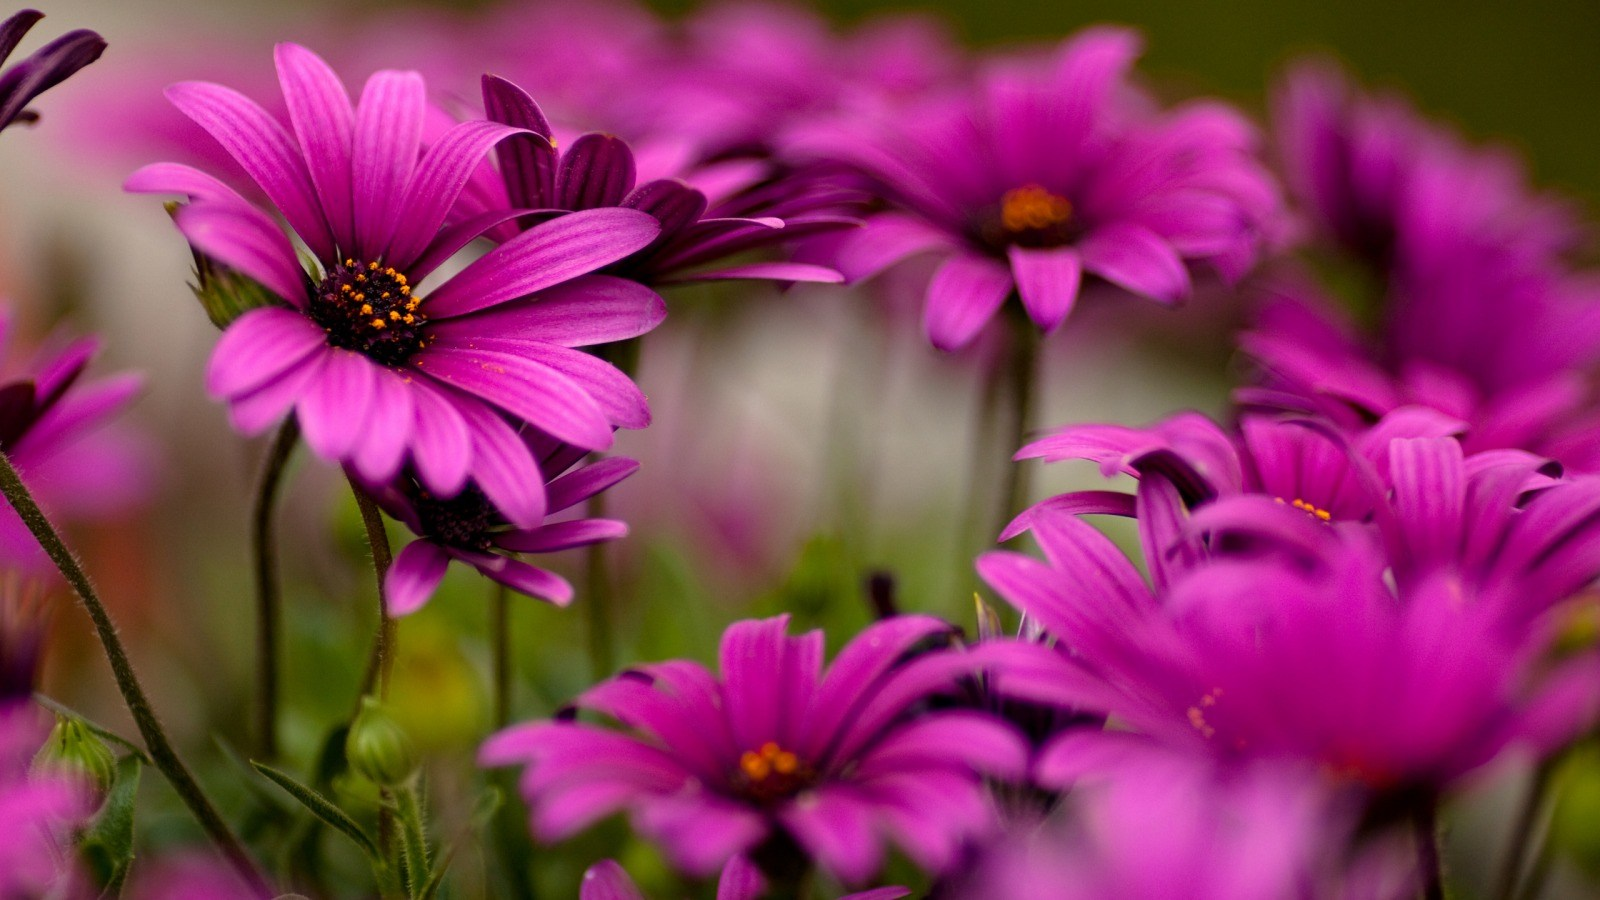 Free download of images of flowers picture freeuse World's Top 100 Beautiful Flowers Images Wallpaper Photos Free ... picture freeuse